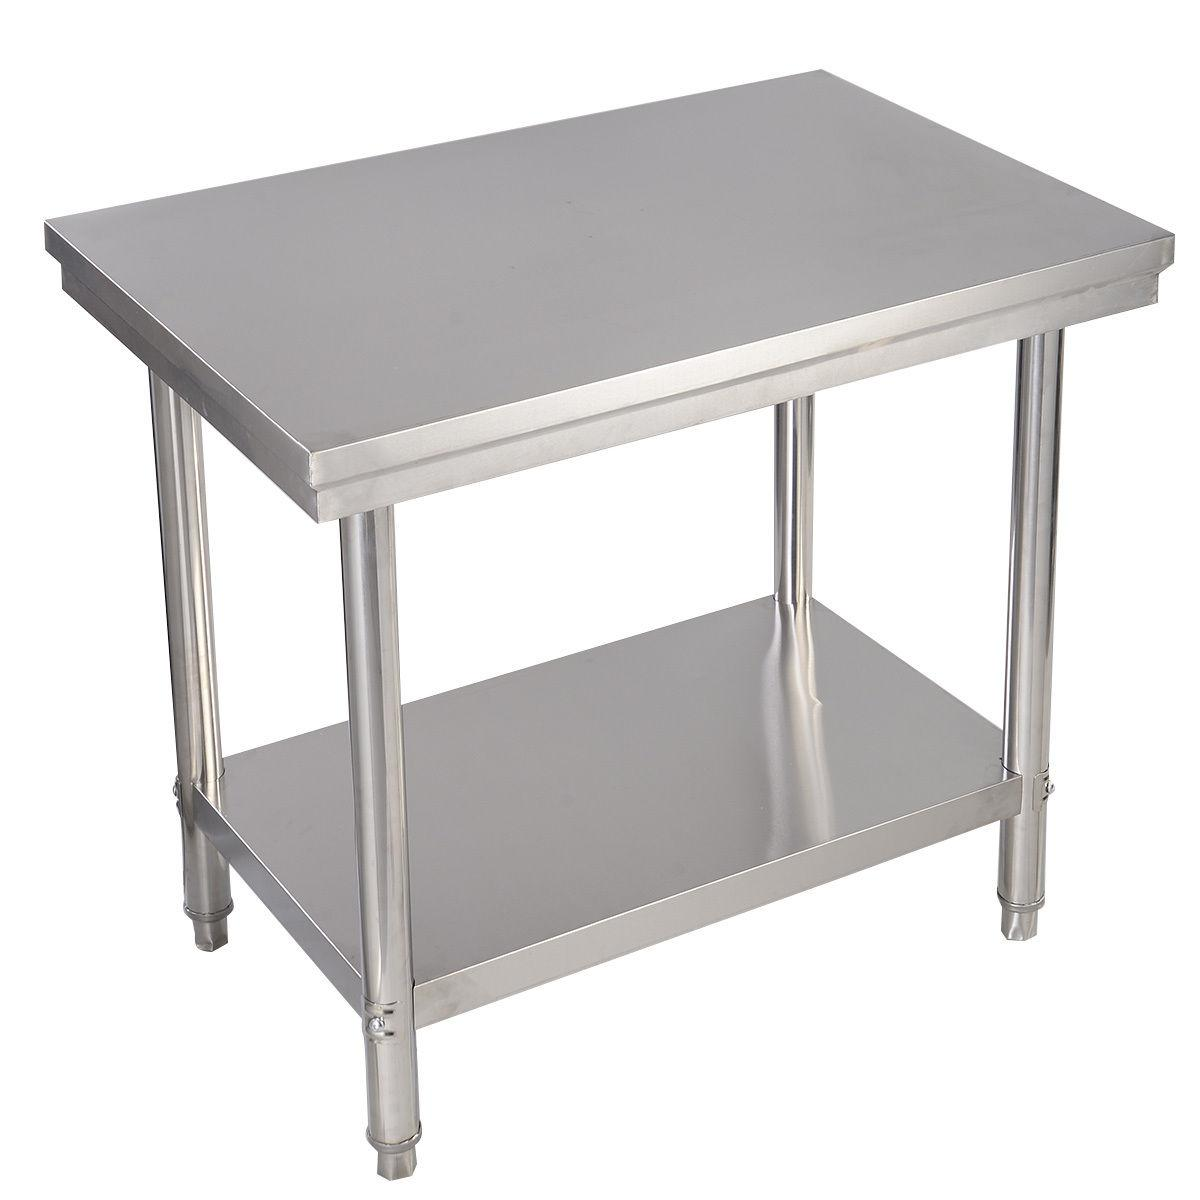 2018 24 X 36 Stainless Steel Commercial Kitchen Work Food Prep Table ...